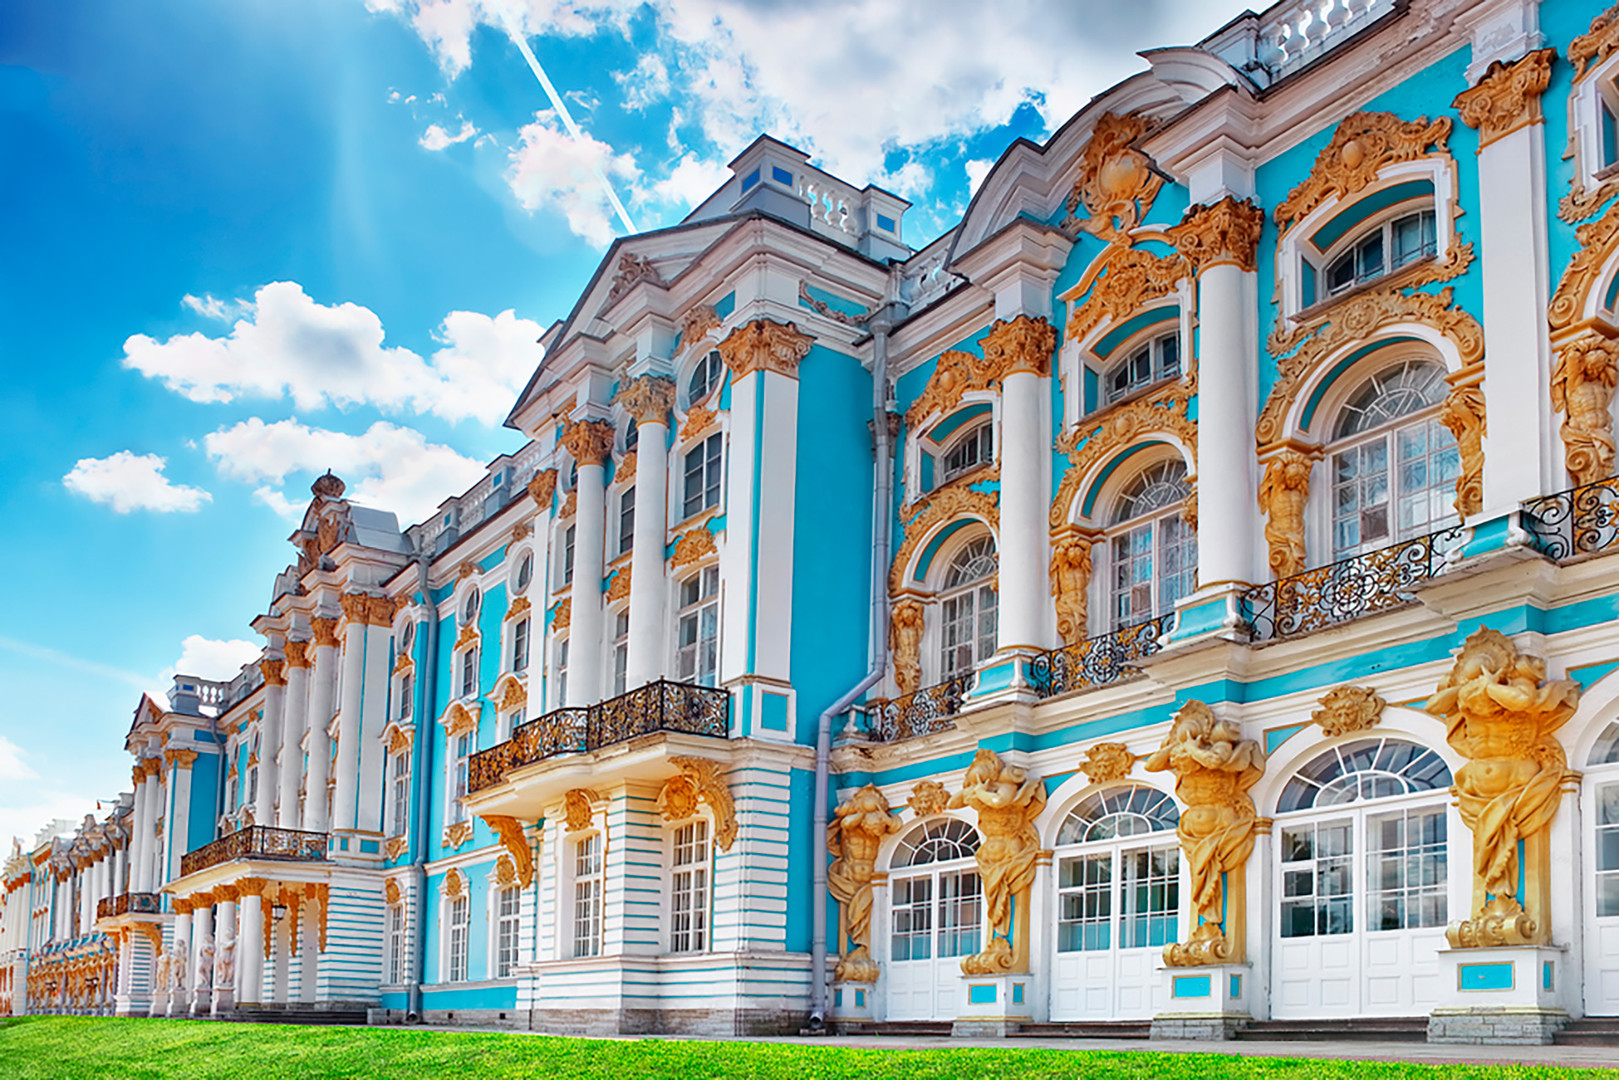 Catherine's Palace in Tsarskoe Selo near St. Petersburg.